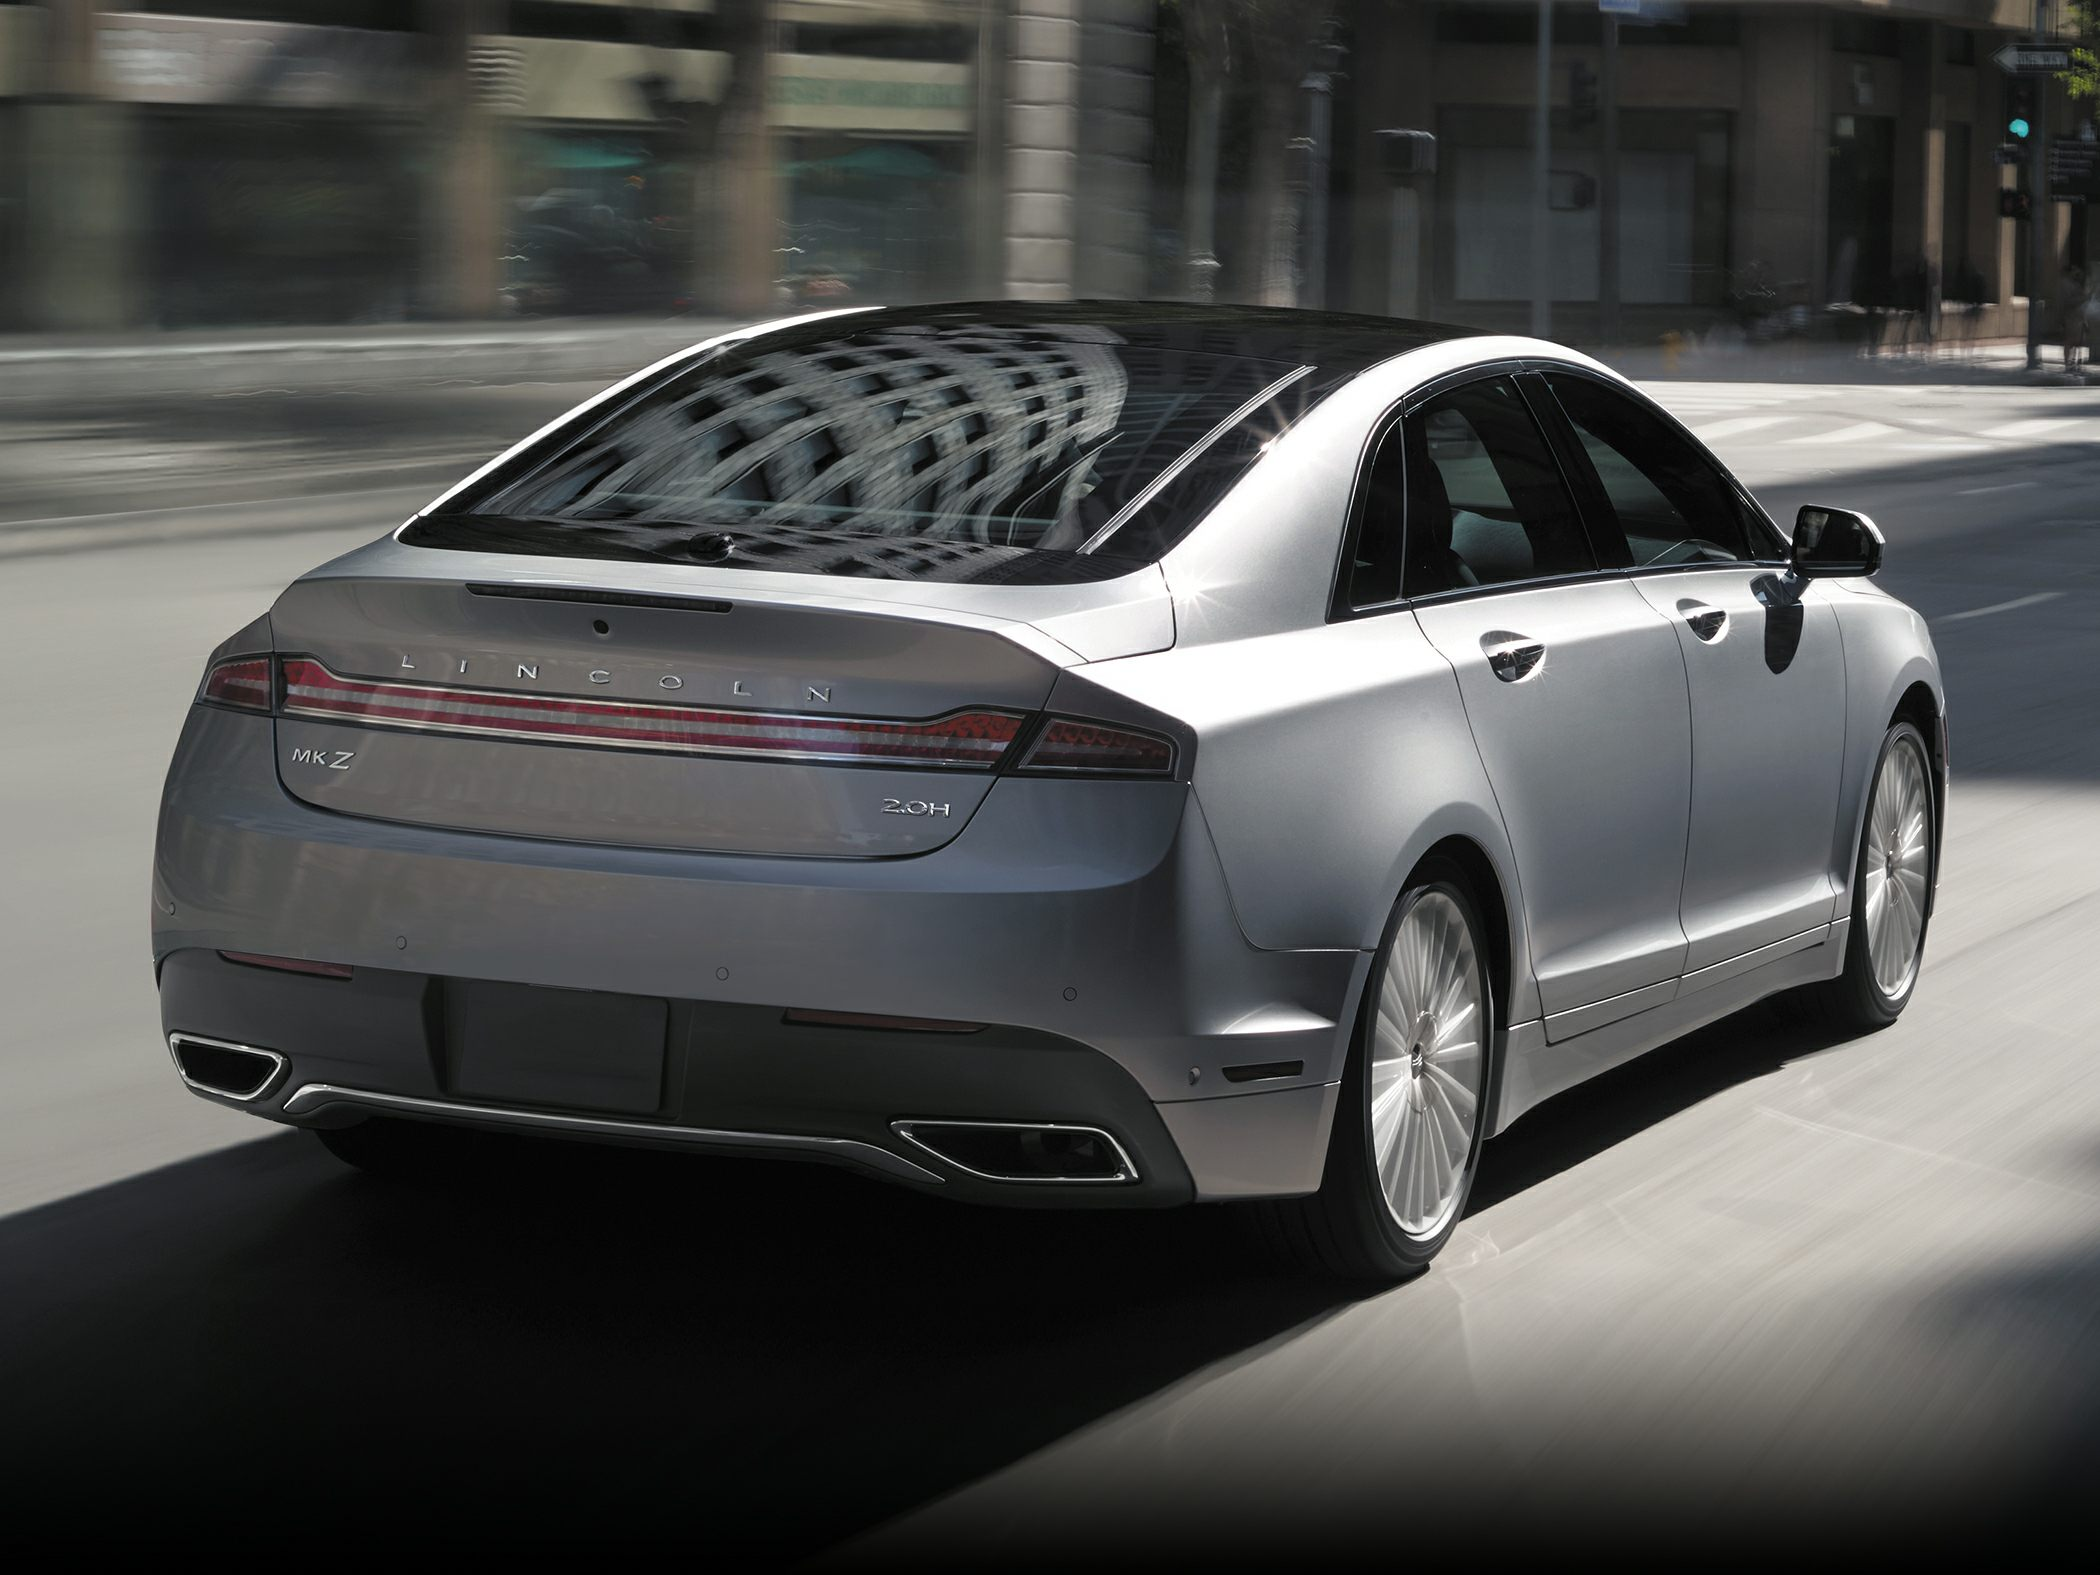 2017 lincoln mkz hybrid deals prices incentives leases overview carsdirect. Black Bedroom Furniture Sets. Home Design Ideas